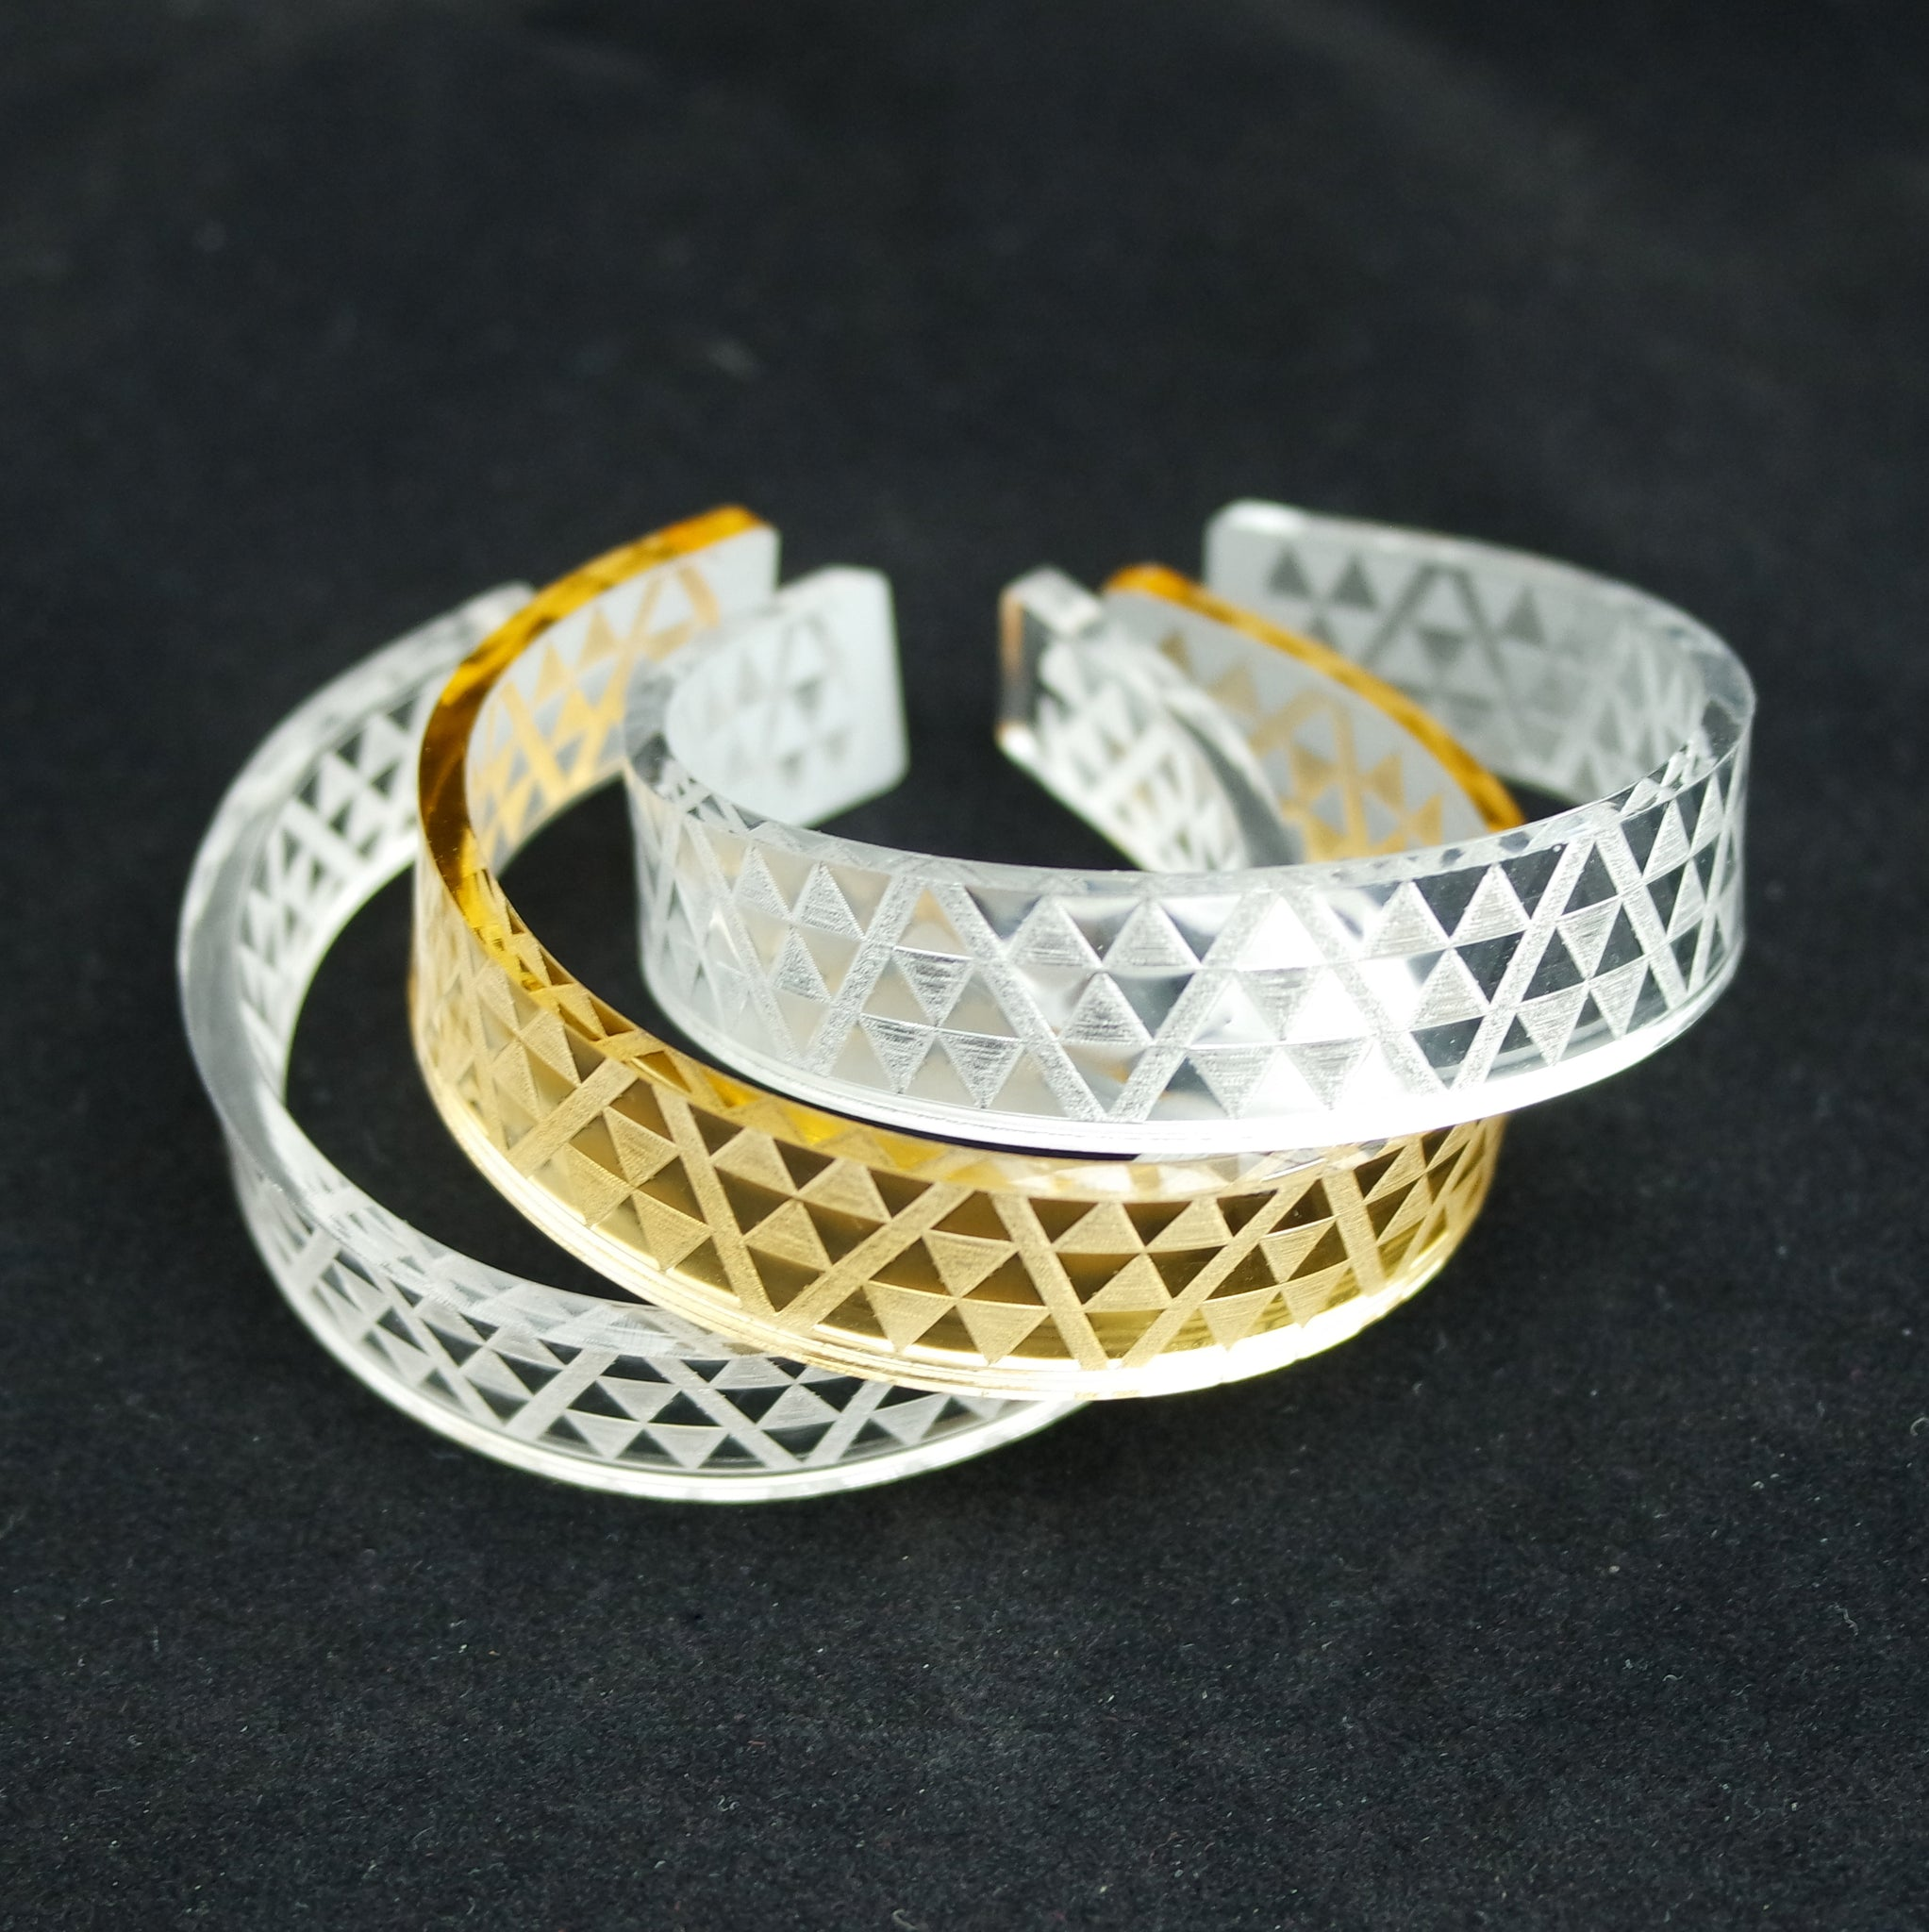 Assorted Cuffs - $14.50